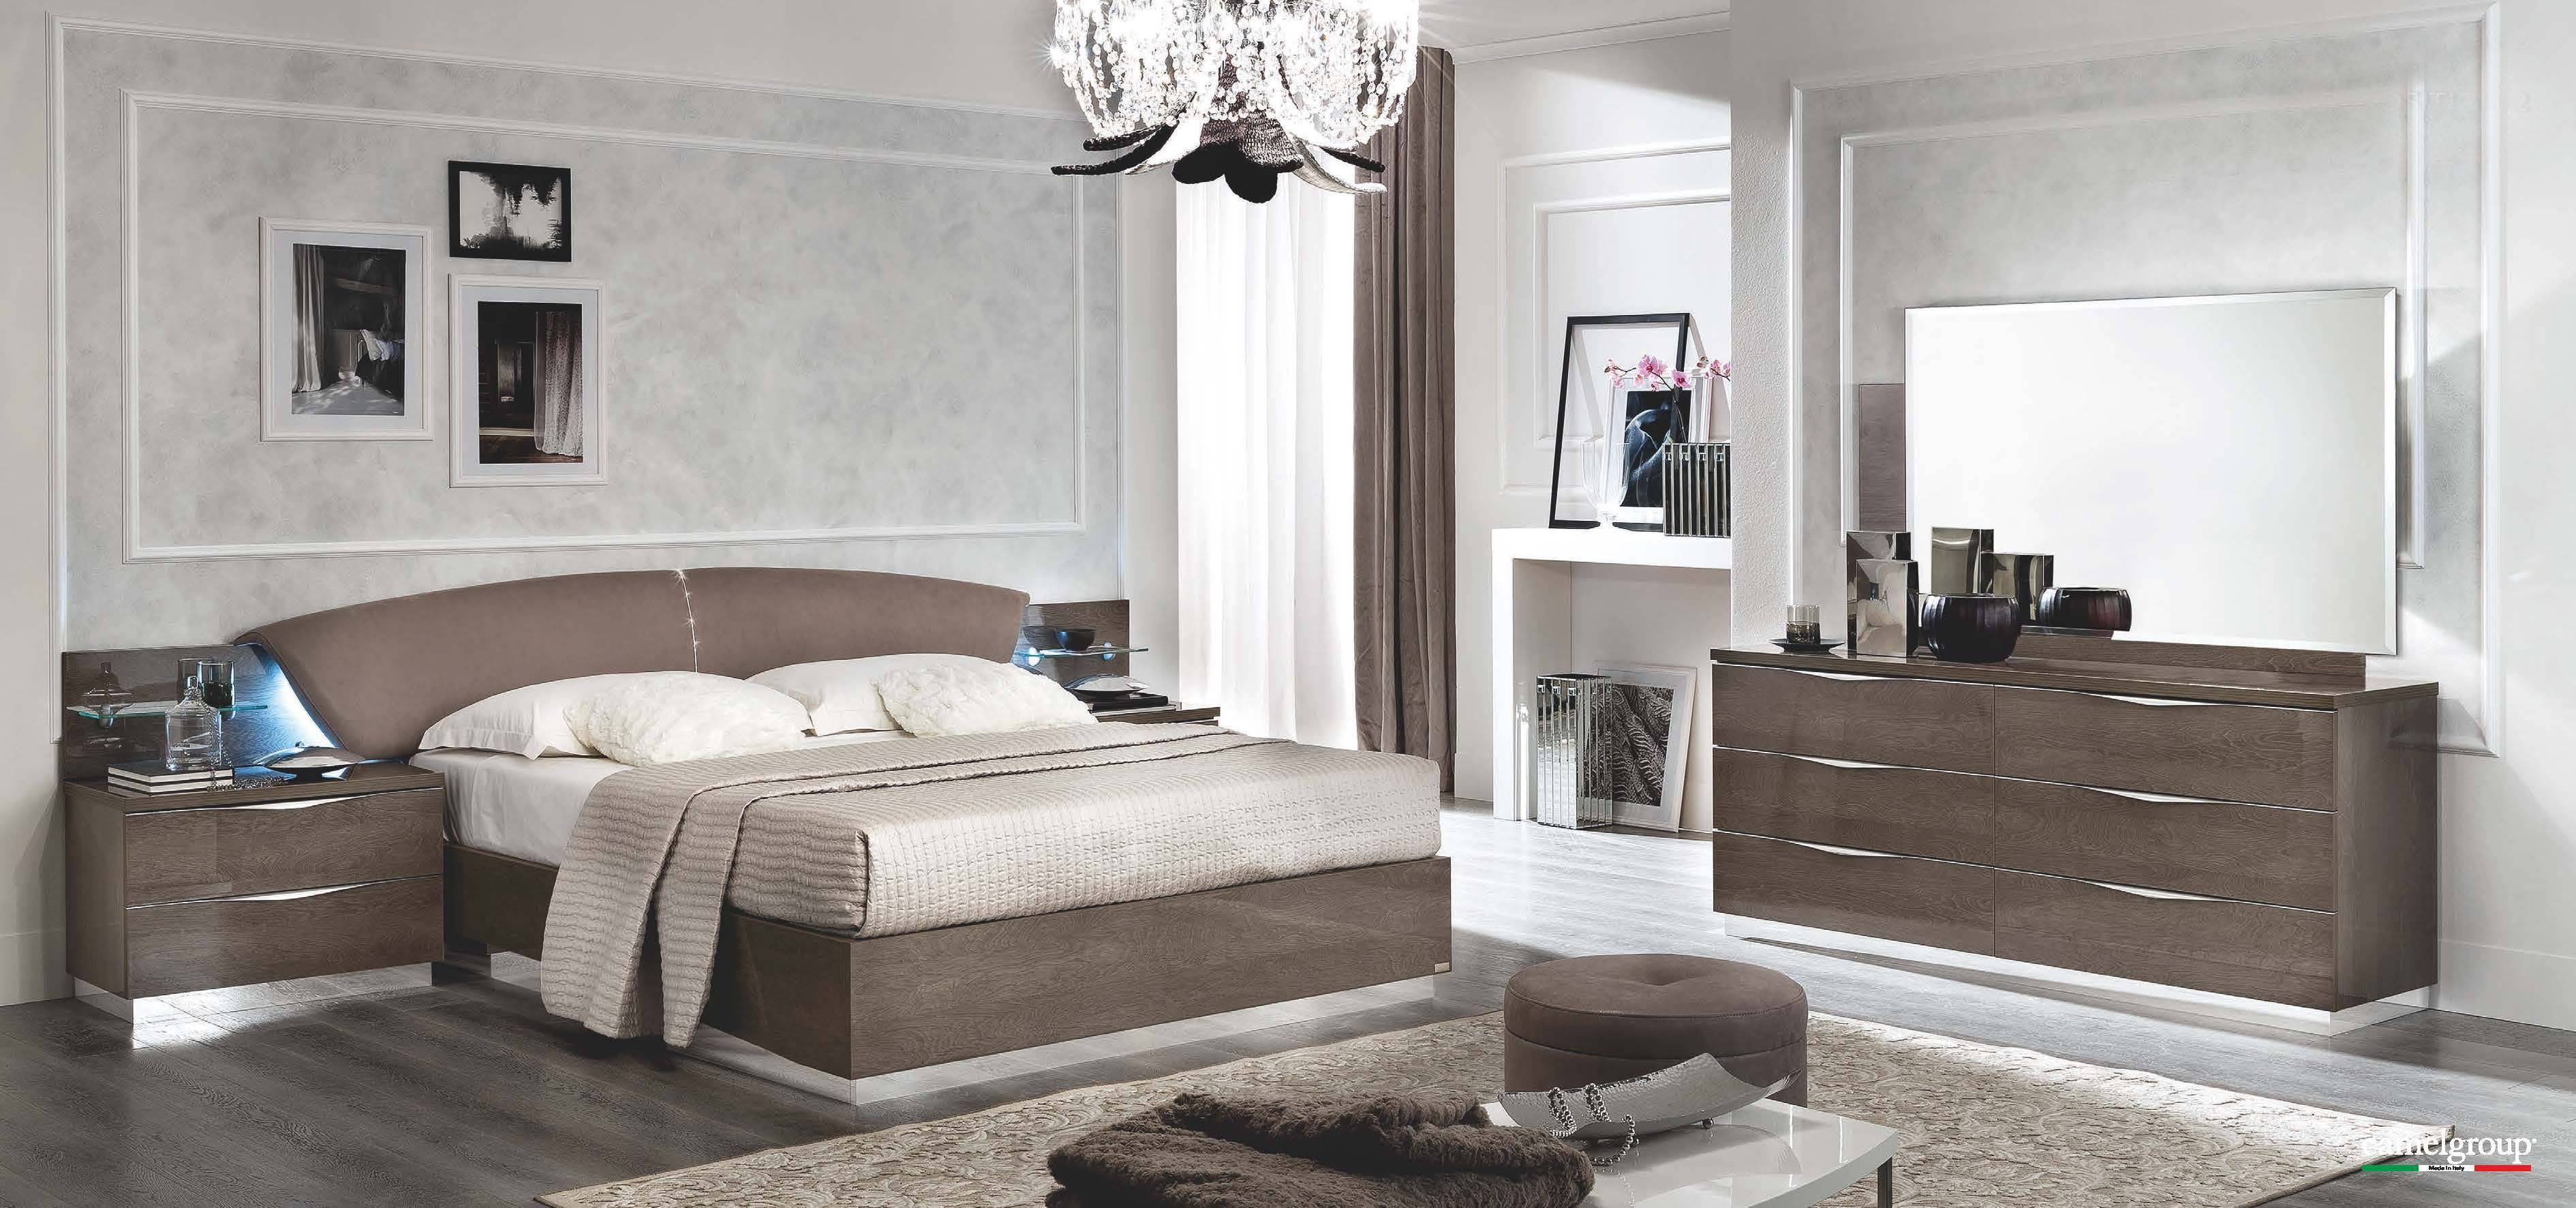 SKU 254833  Made in Italy Quality Design Bedroom Furniture. Made in Italy Quality Design Bedroom Furniture Cape Coral Florida